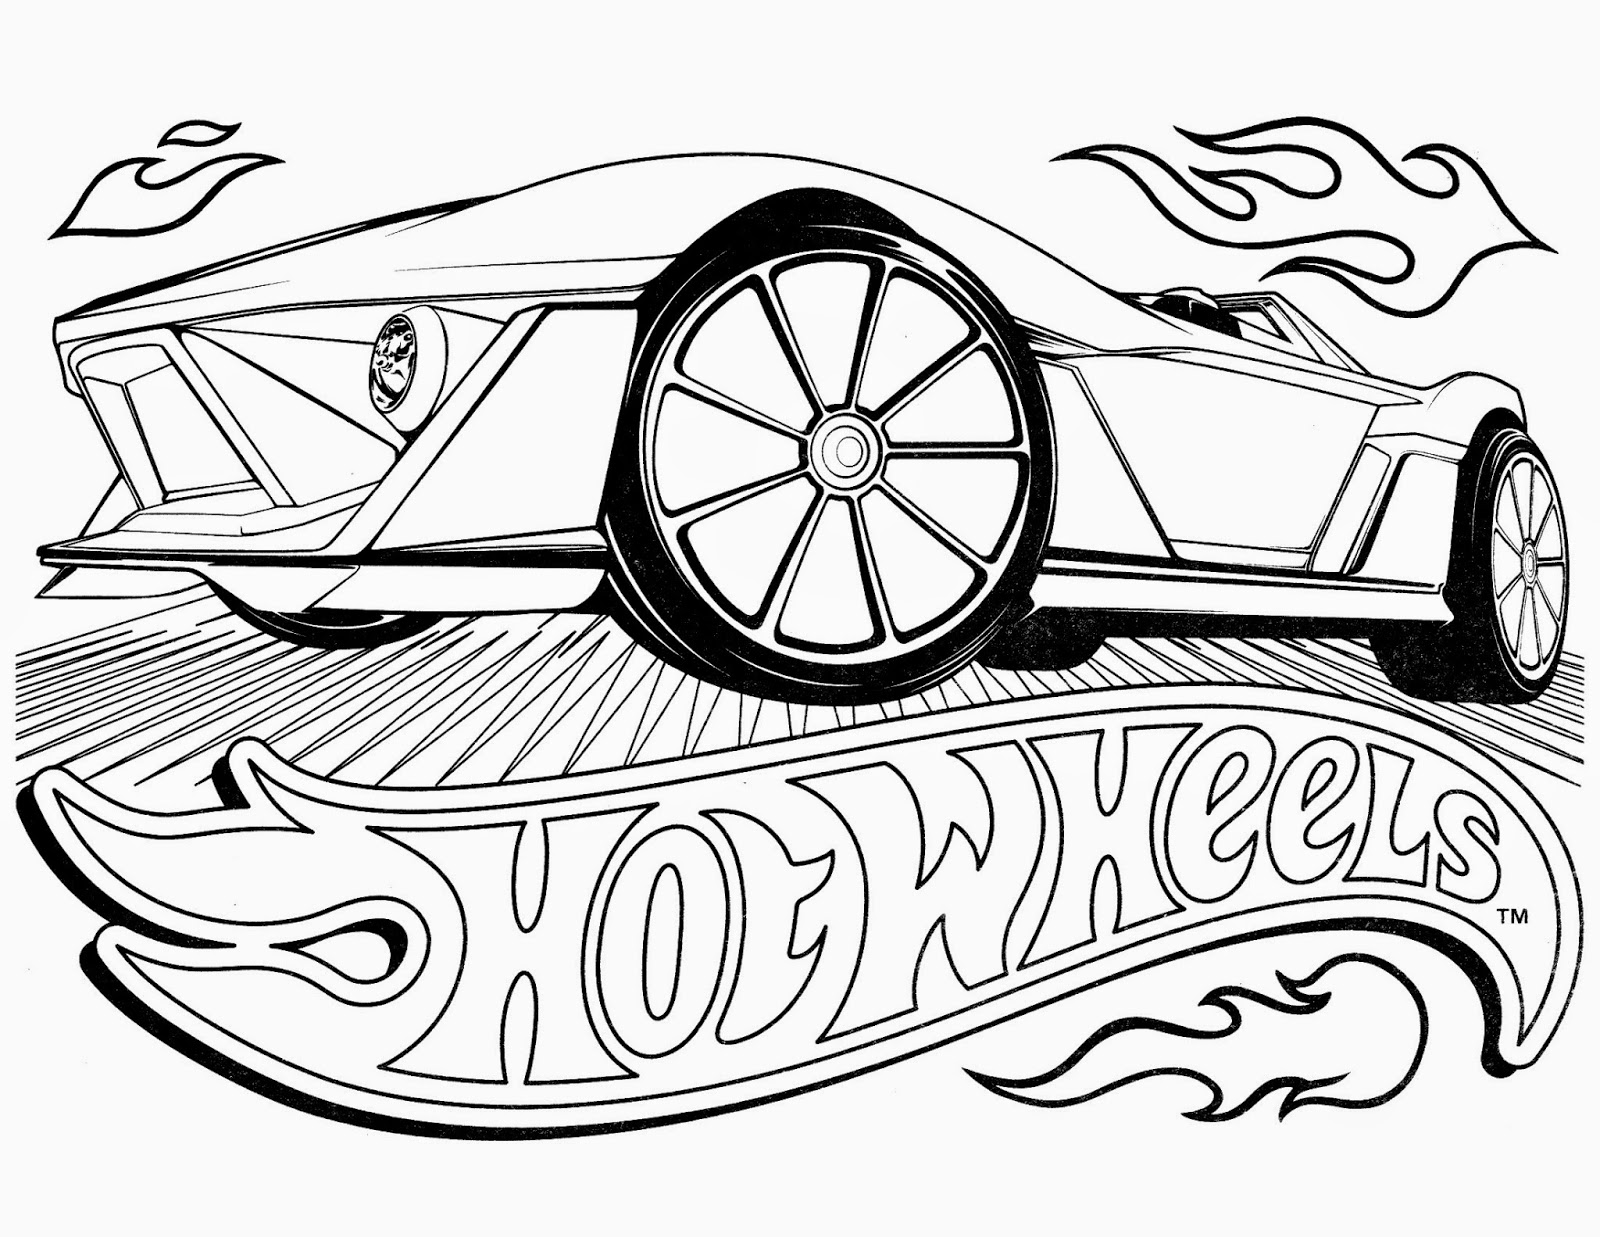 hotwheels colouring pages free printable hot wheels coloring pages for kids hotwheels pages colouring